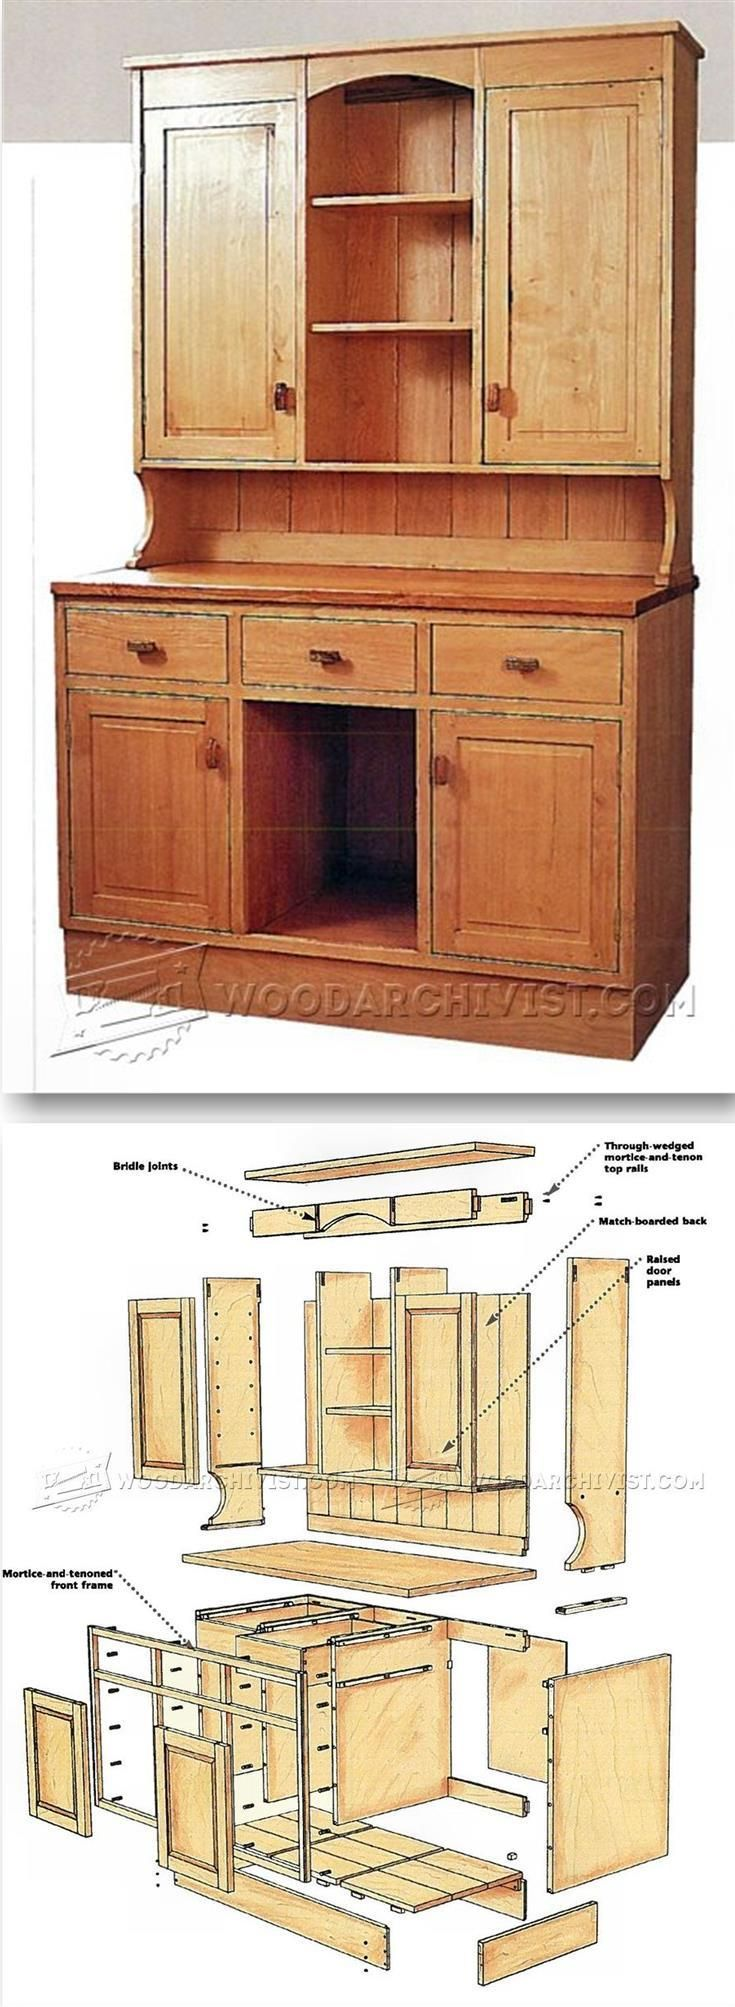 Uncategorized Wooden Furniture For Kitchen top 25 best kitchen furniture ideas on pinterest natural country hutch and antique hutch